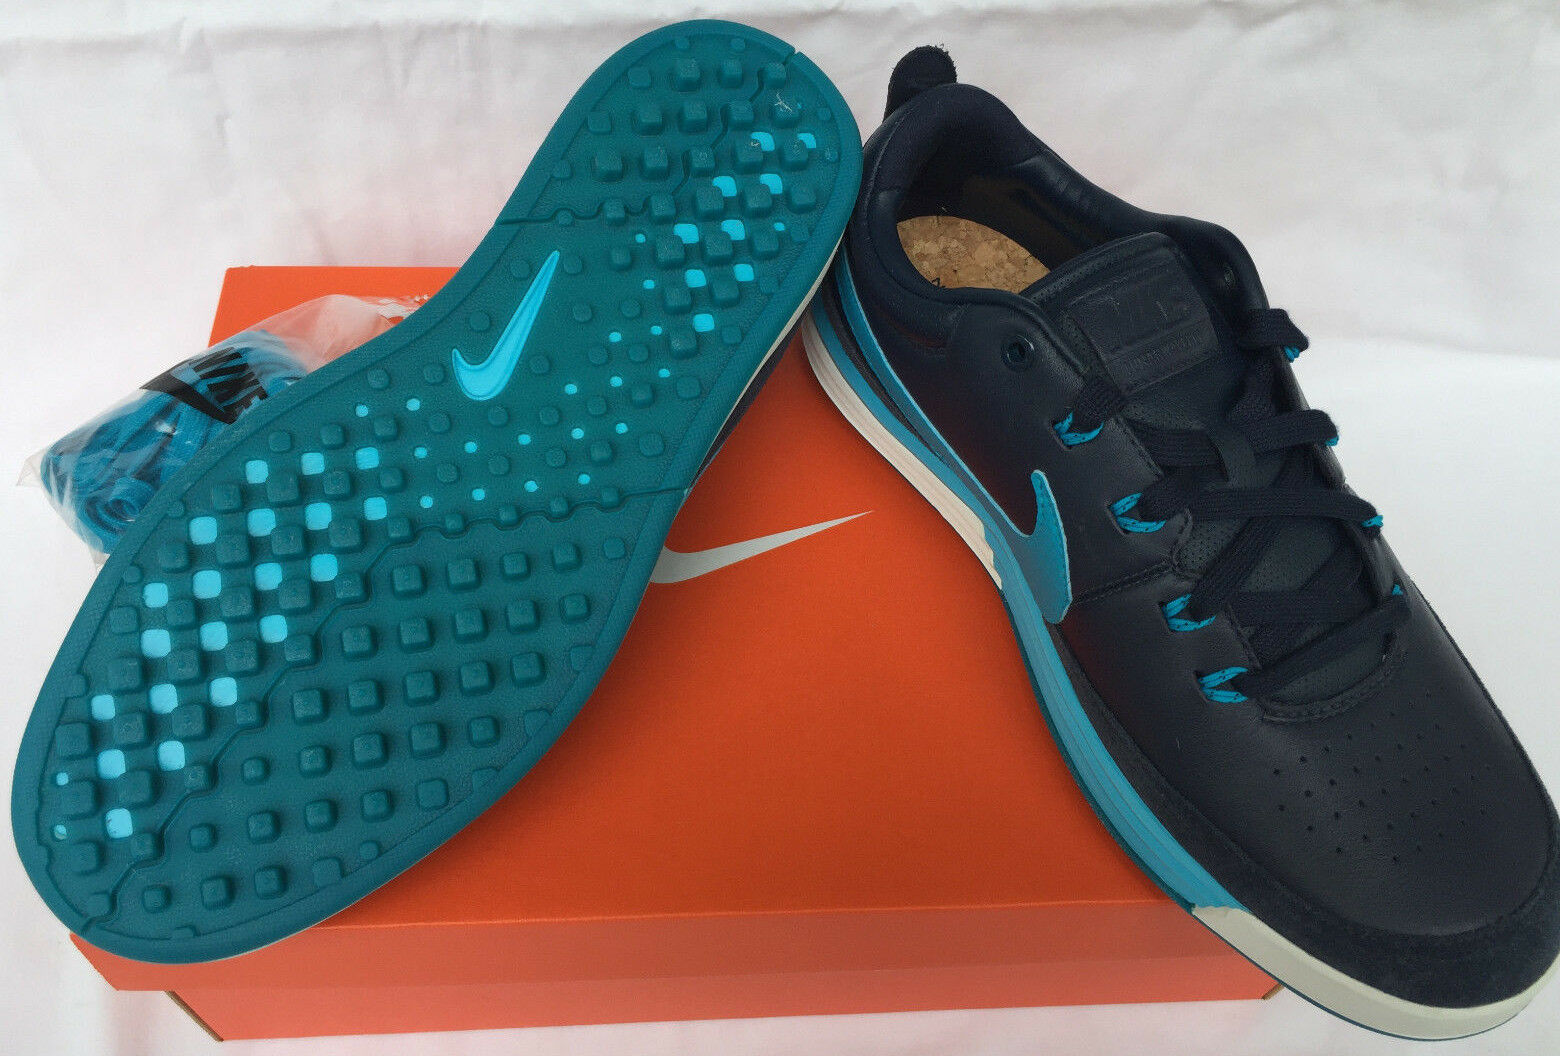 Nike chaussures Golf Lunarwaverly 652780-400 Obsidian Leather Waffle Golf chaussures Nike homme 7.5 c17a64